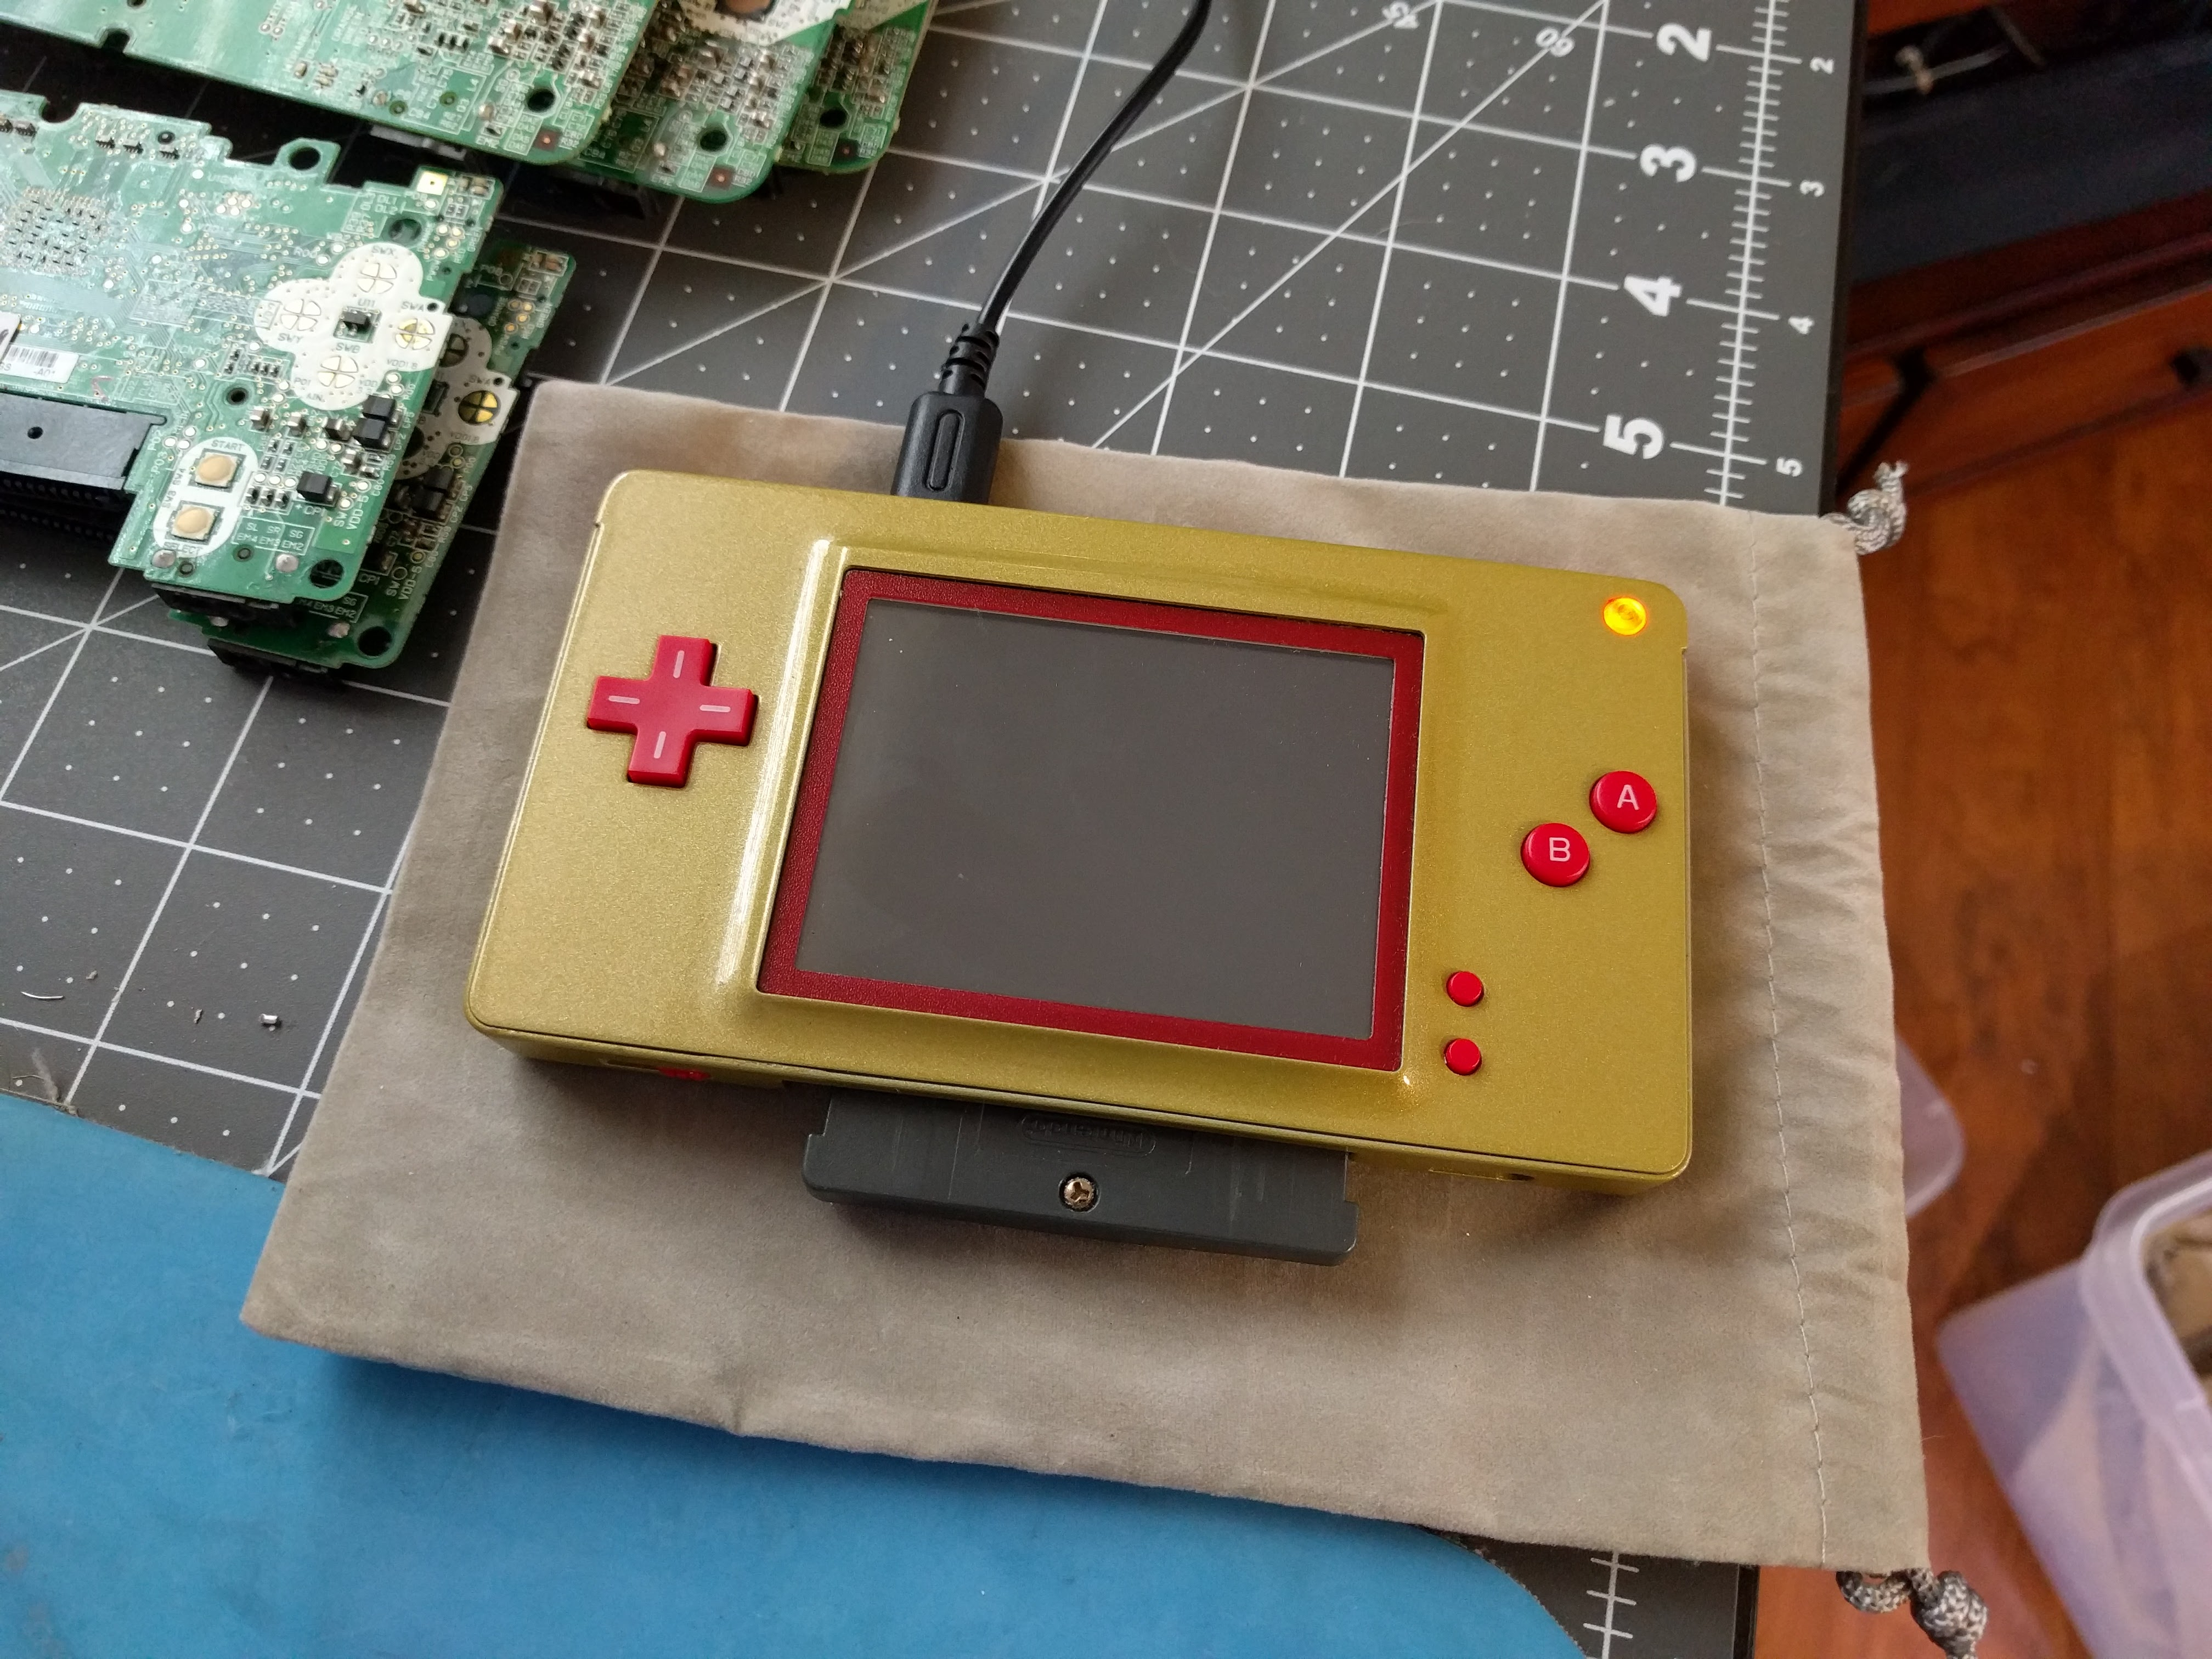 Game boy color kaufen - Macros Shipping